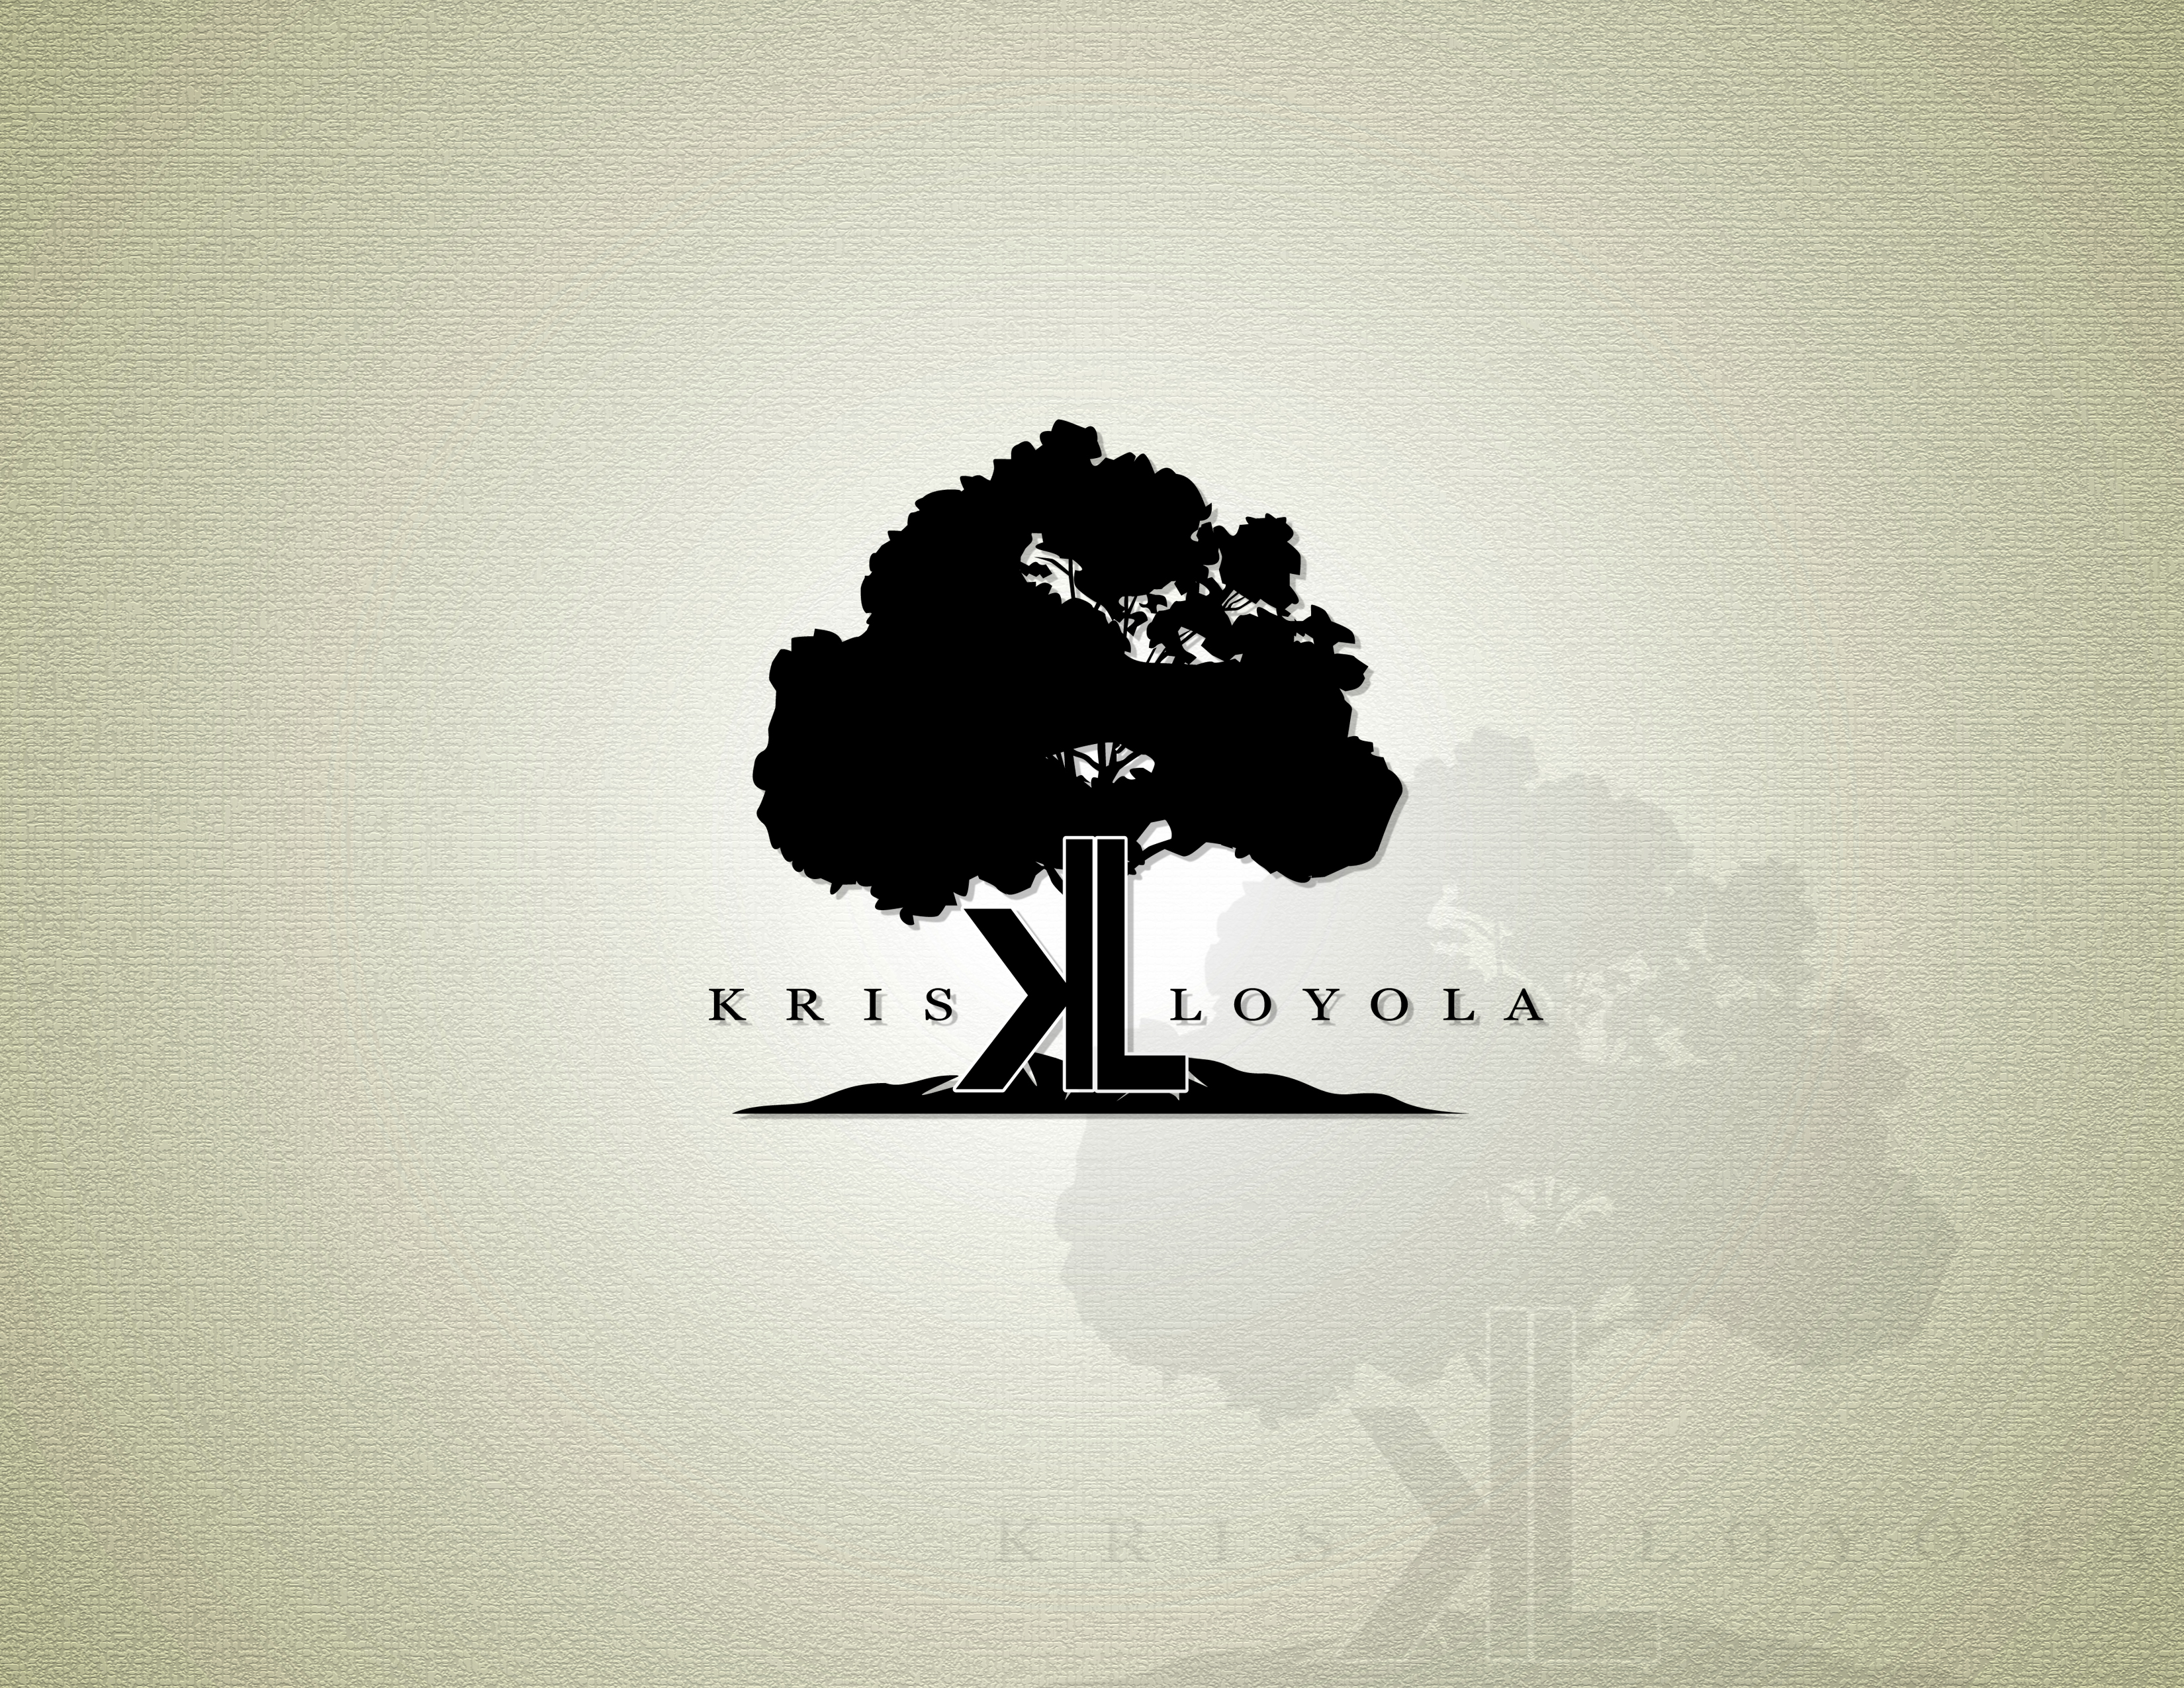 Logo Design by Private User - Entry No. 25 in the Logo Design Contest Kris Loyola Logo Design.